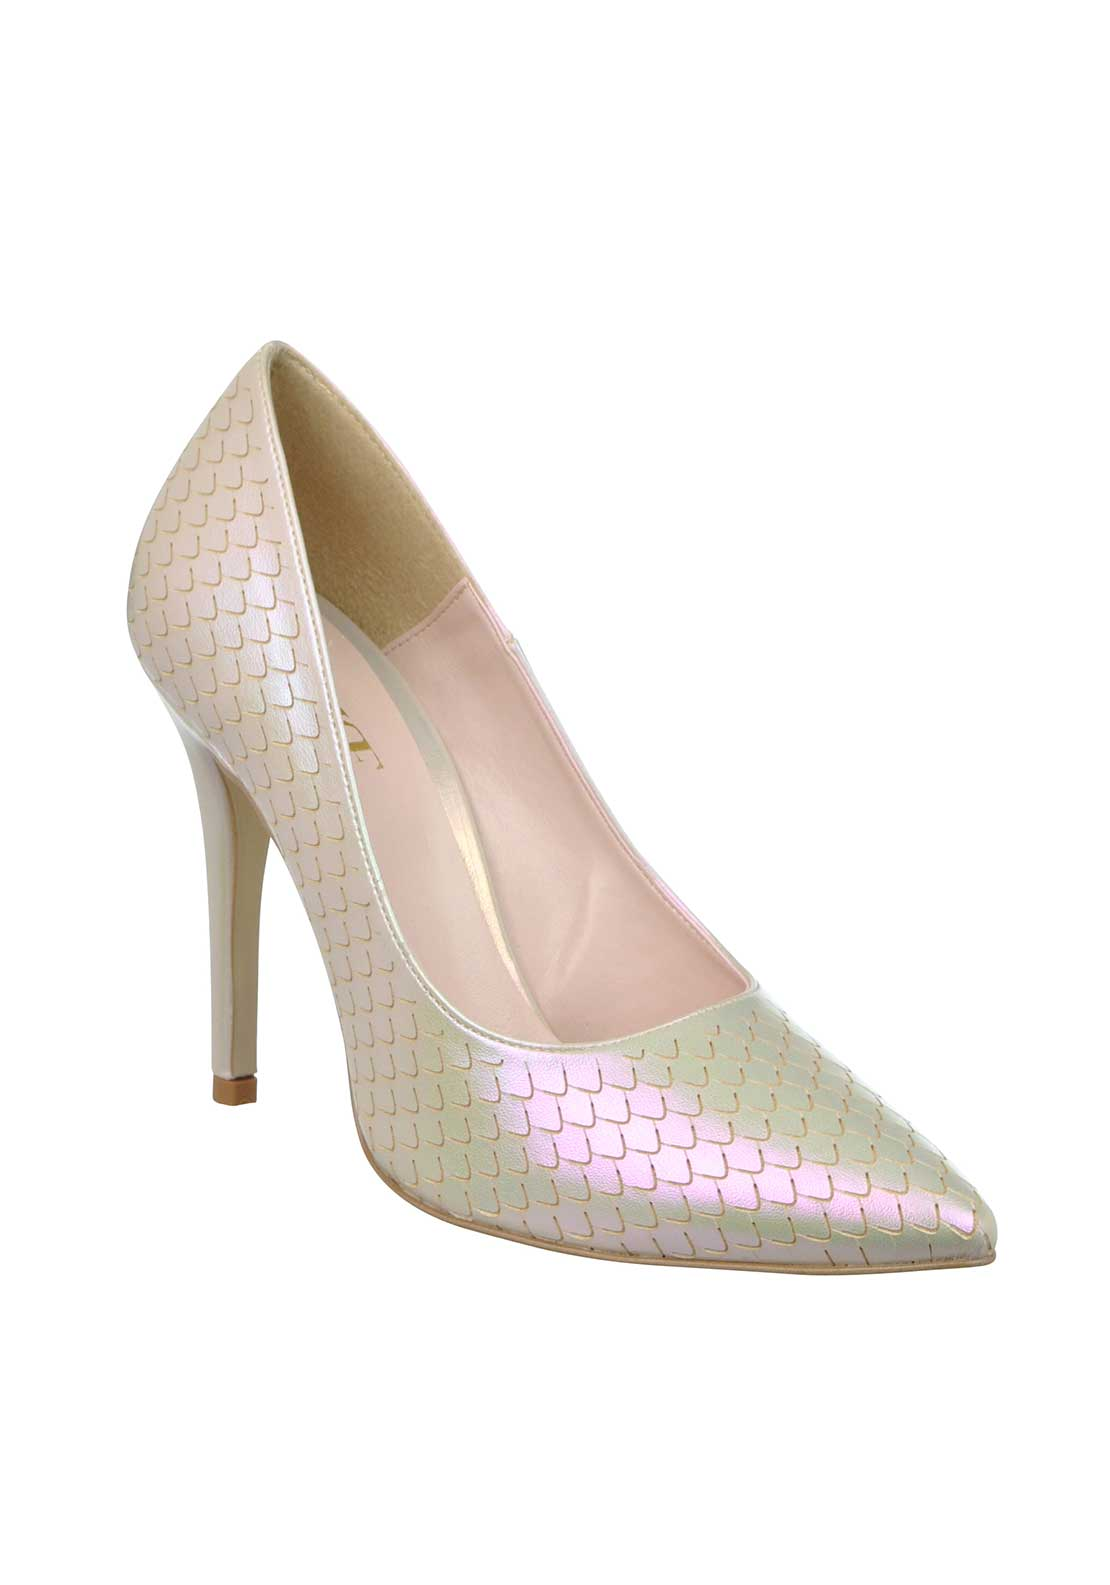 McElhinney's Shimmering Mermaid Print Pointed Toe Heeled Shoes, Cream